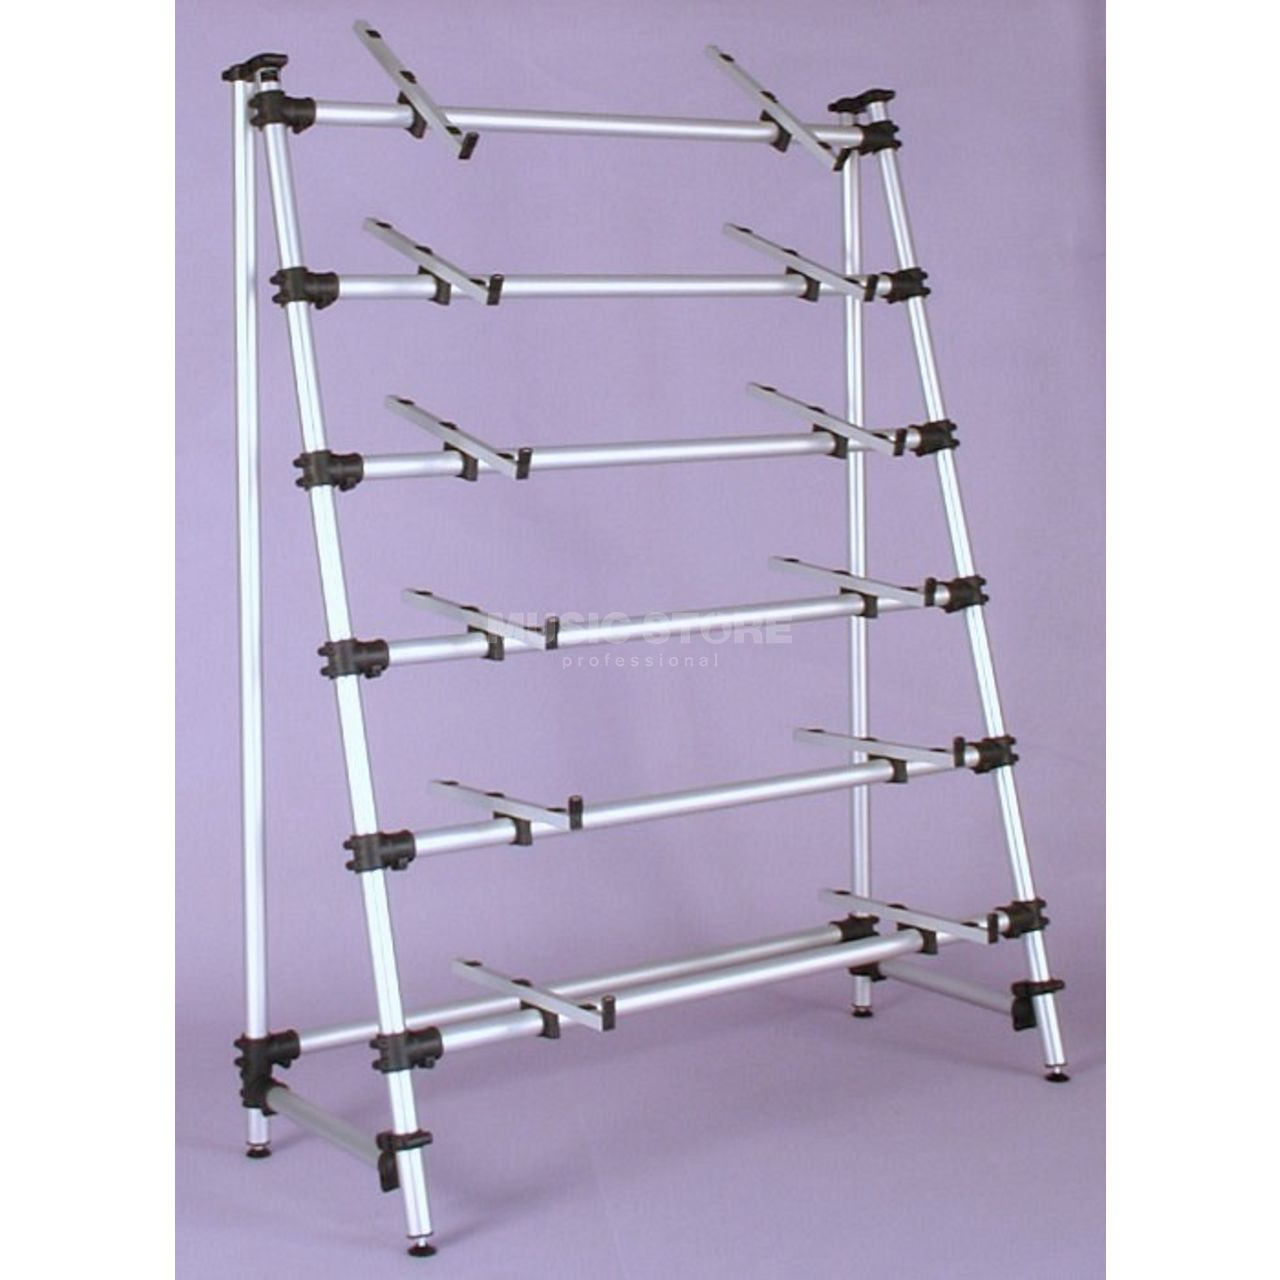 jaspers 6d 120s keyboard stand for 6 keyboards silver